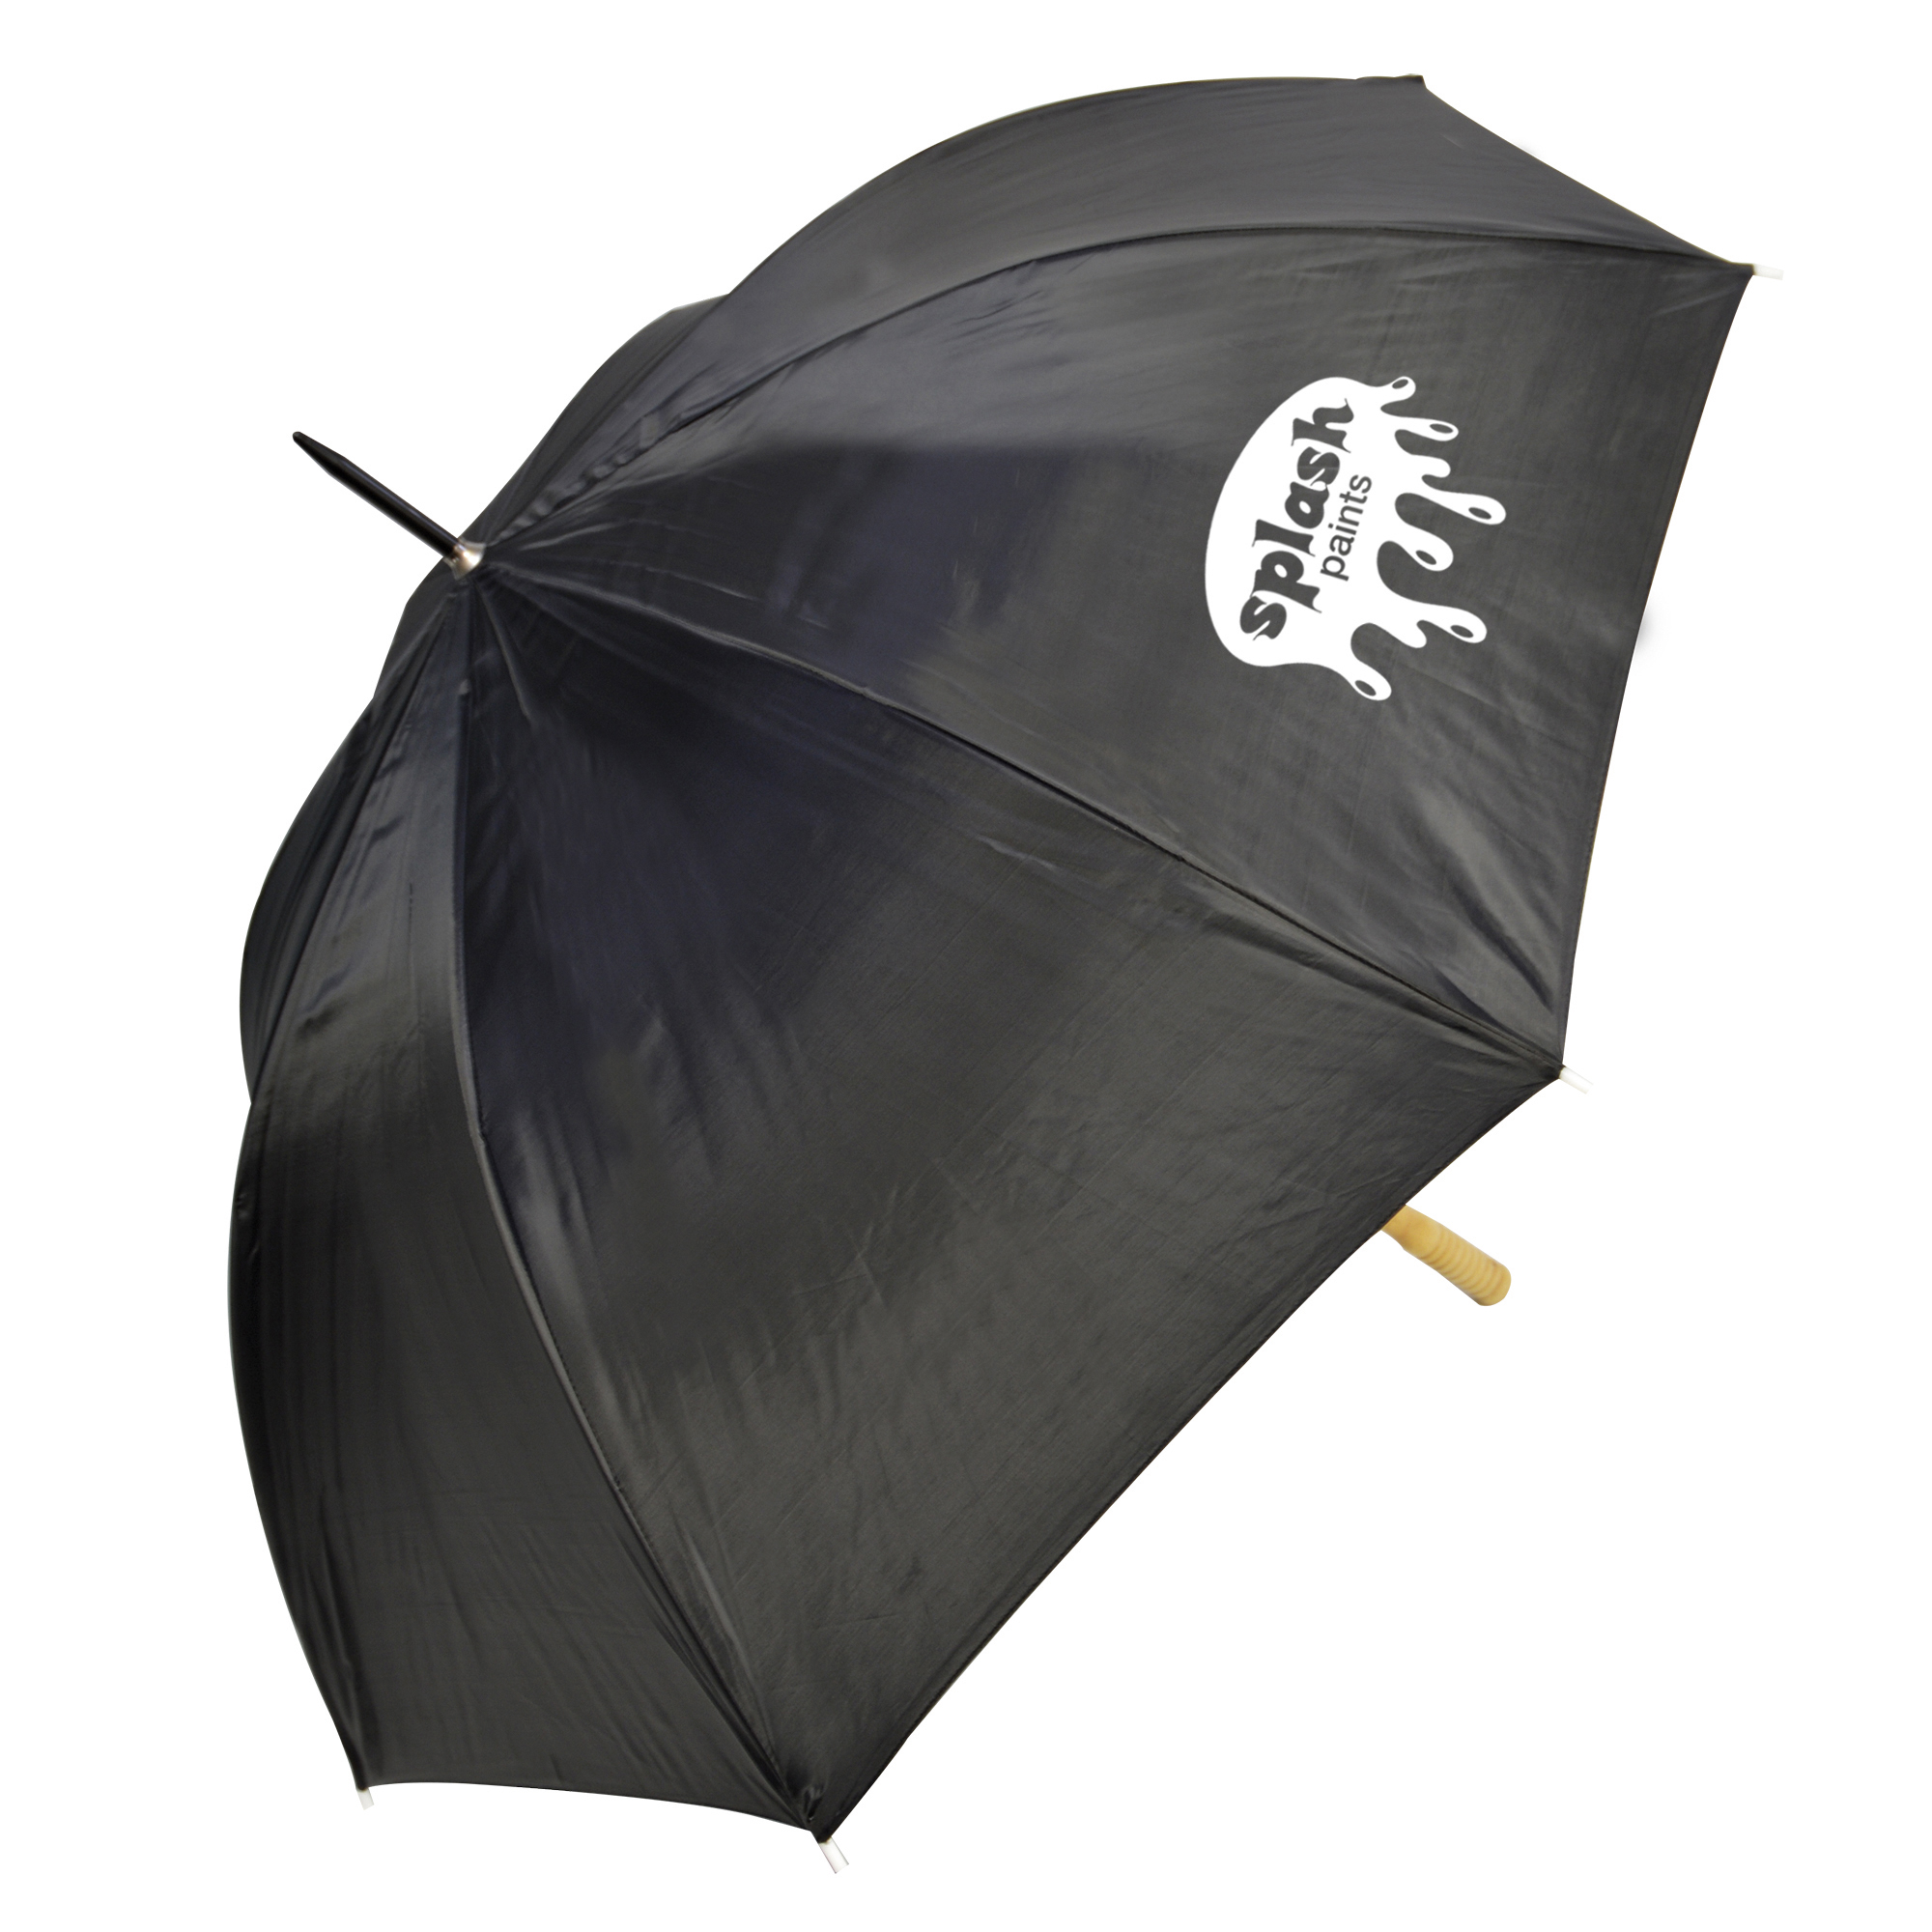 Branded Rockfish 28 Inch Automatic Golf Umbrella